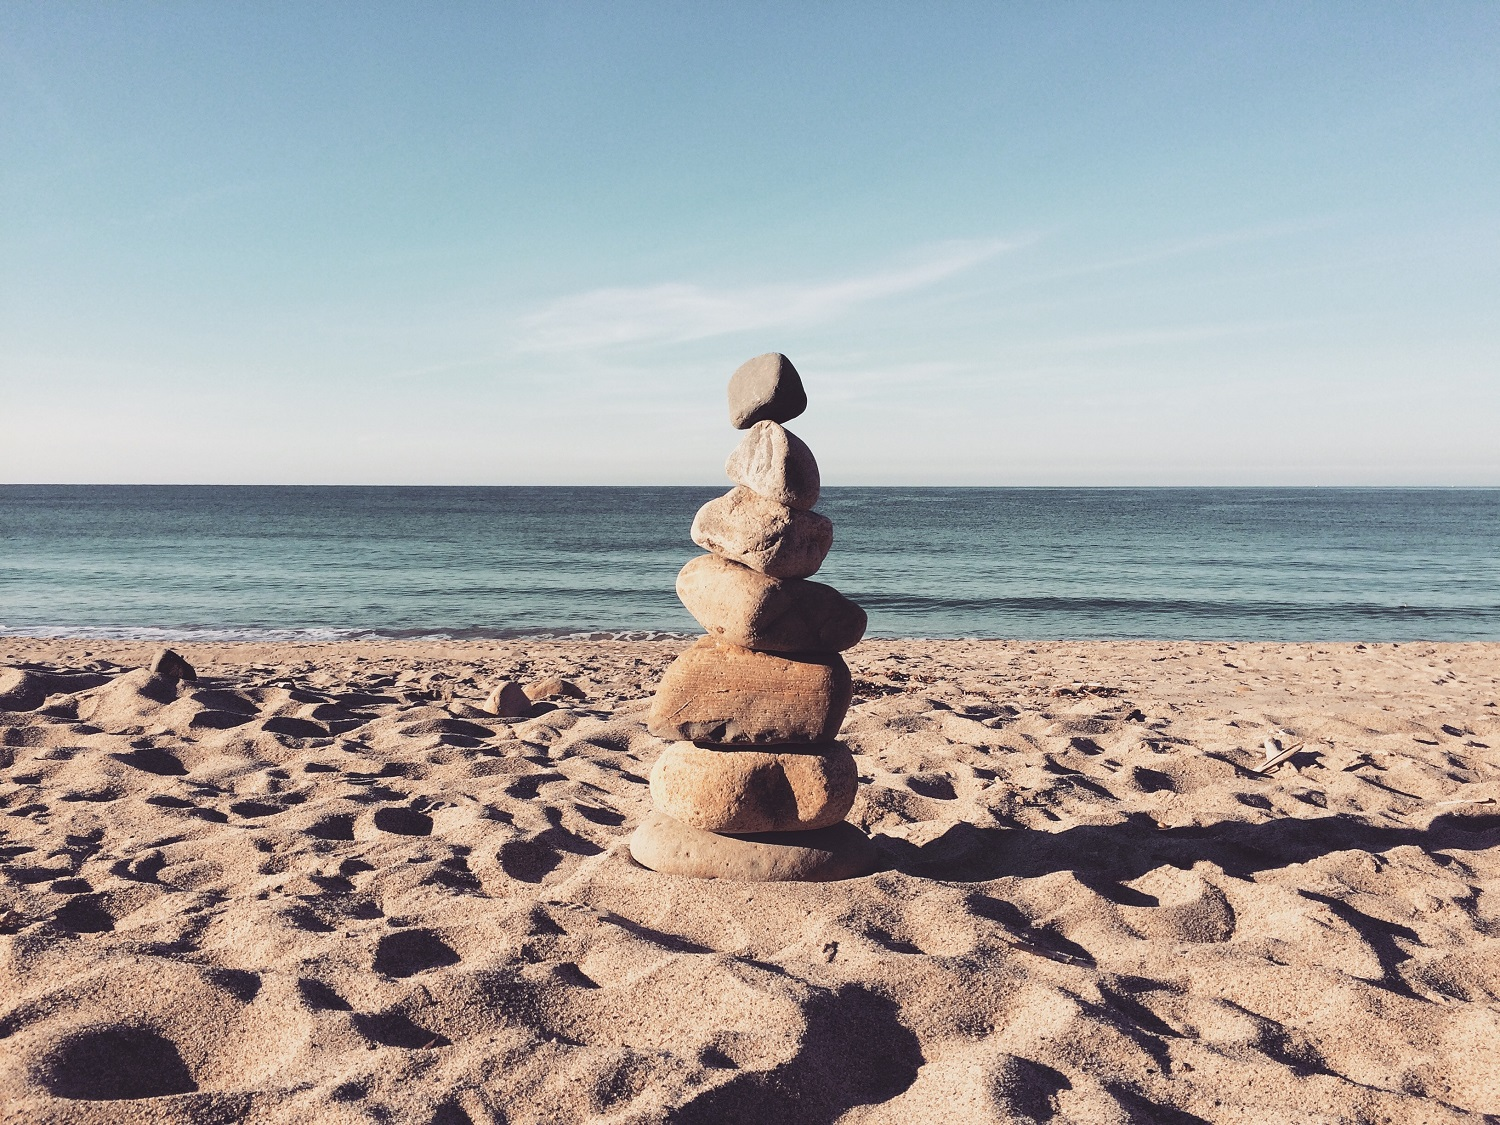 A rock tower standing on a beach in front of the ocean.